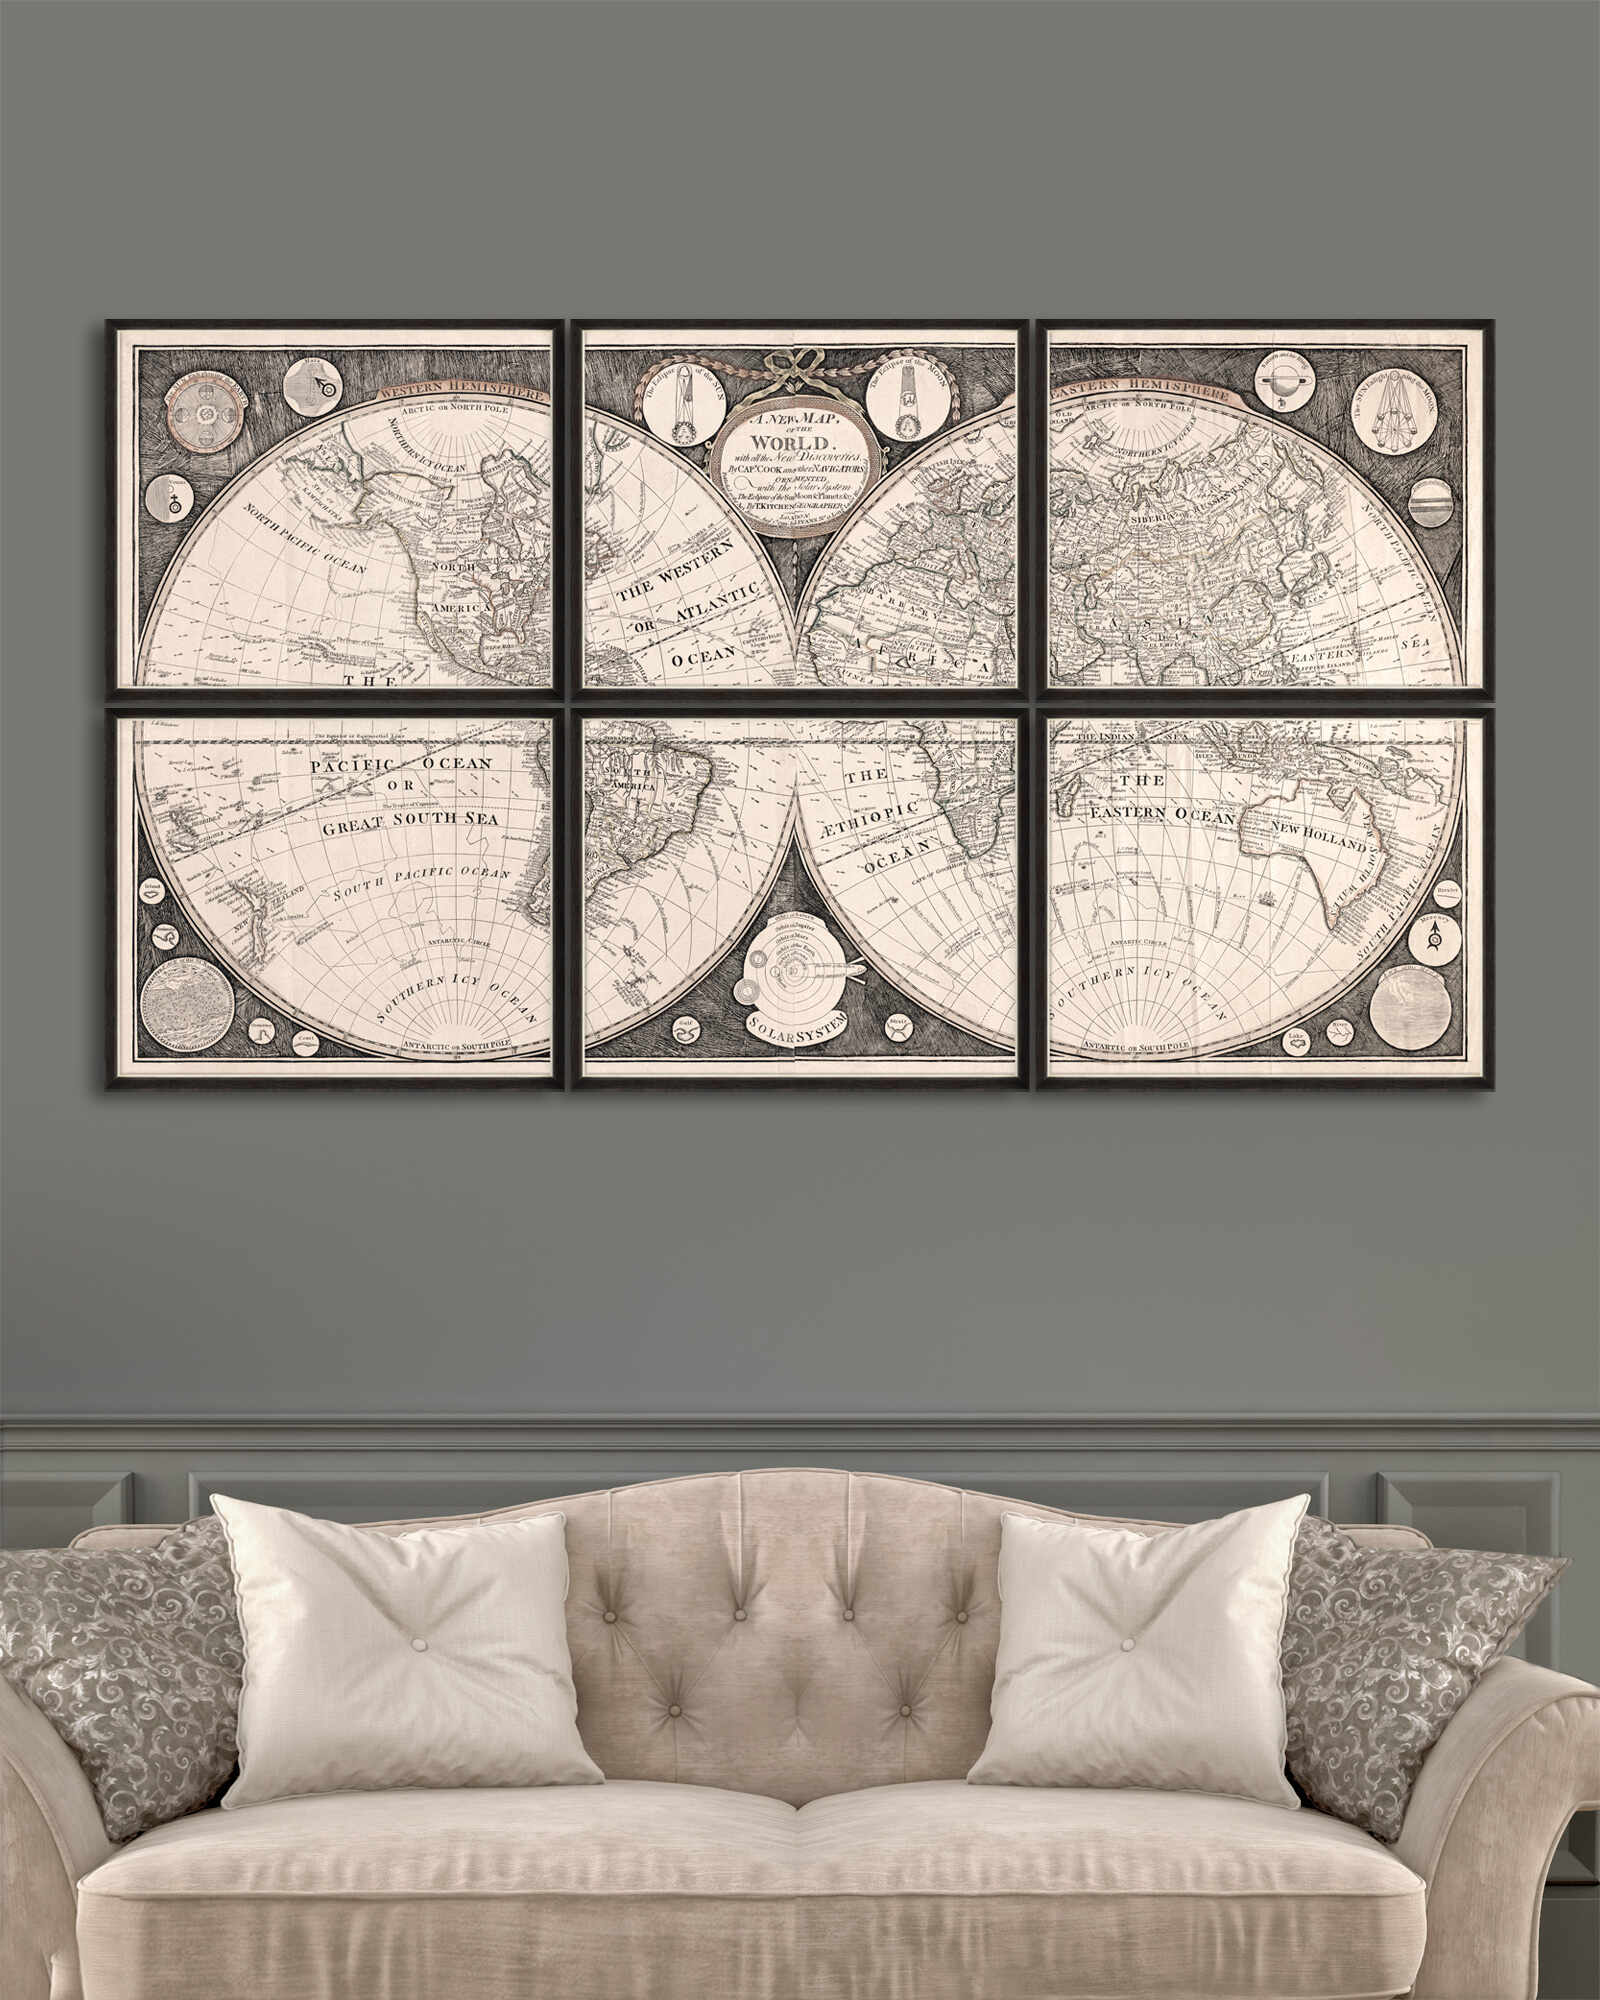 Tablou 6 piese Framed Art A New Map Of The World la pret 1455 lei